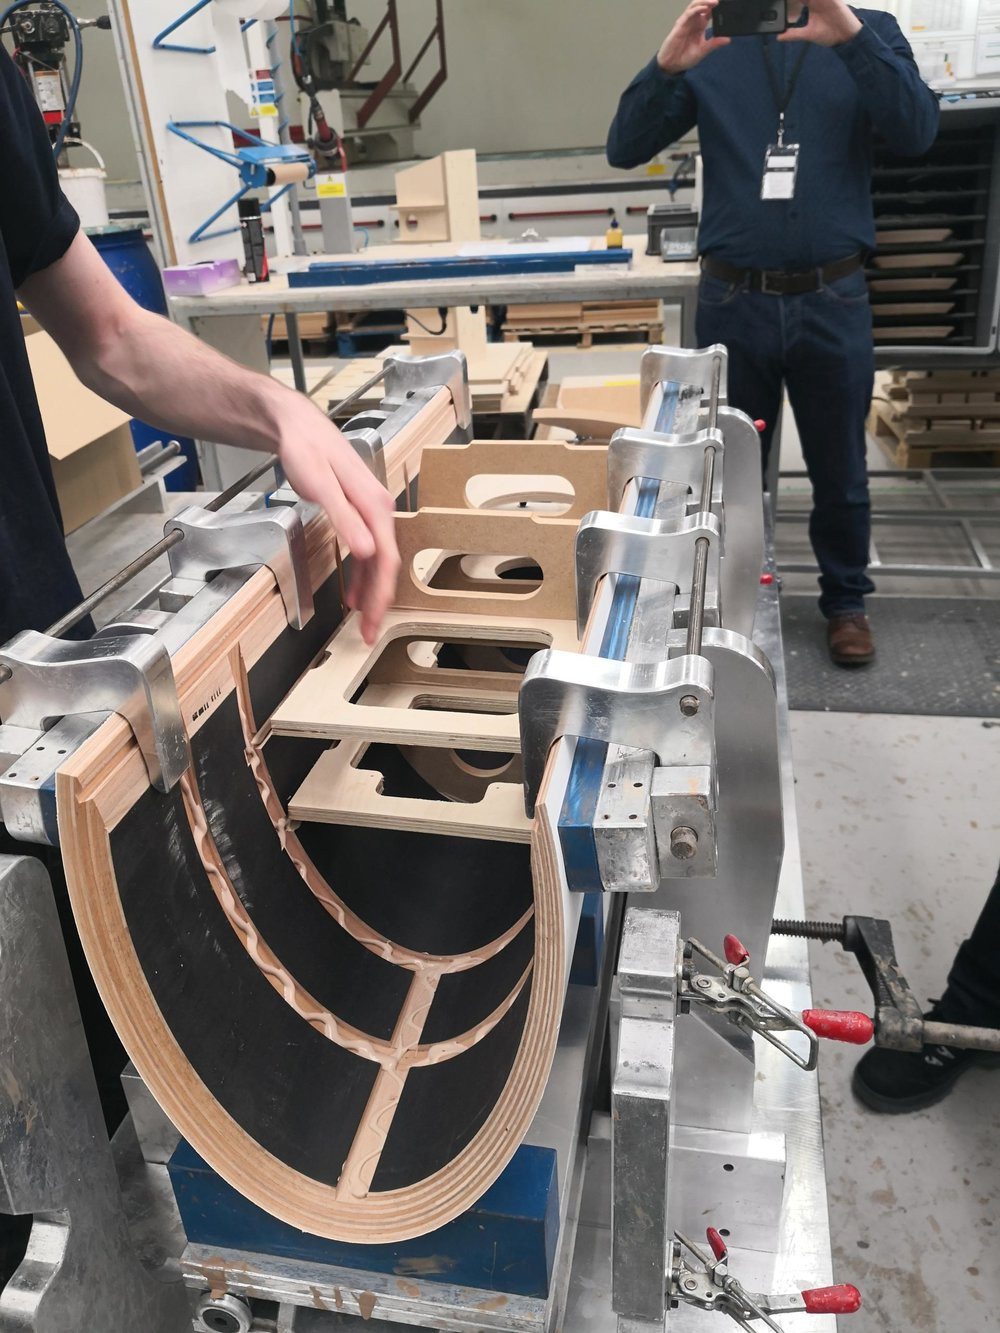 With the cabinet prised apart by metal jaws the matrix is positioned and glued into place. When the jaws are released the natural spring of the cabinet form will add compression to the matrix